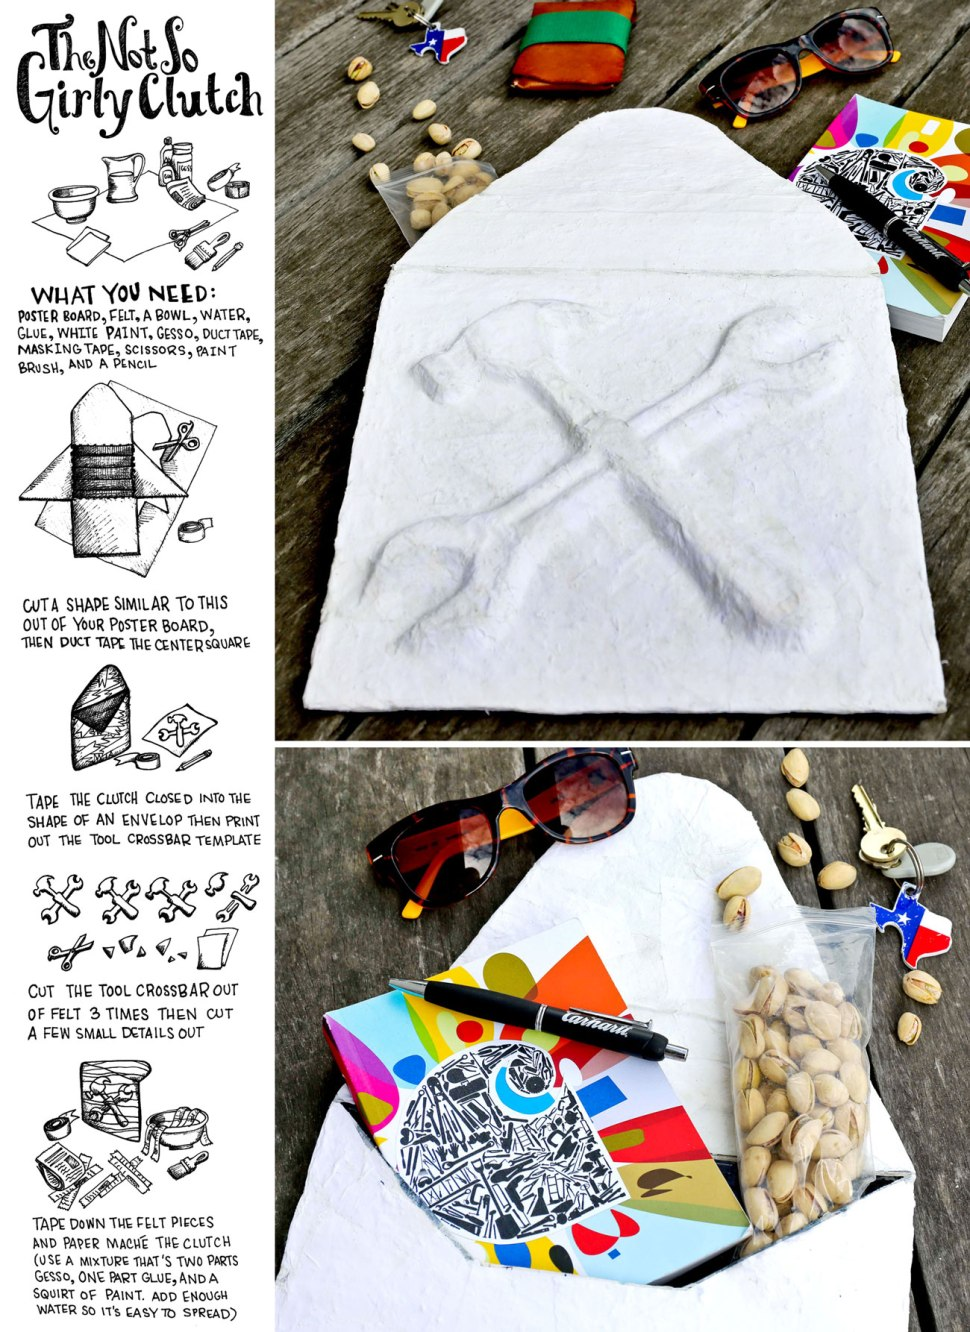 DIY The Not So Girly Clutch / Crafted in Carhartt